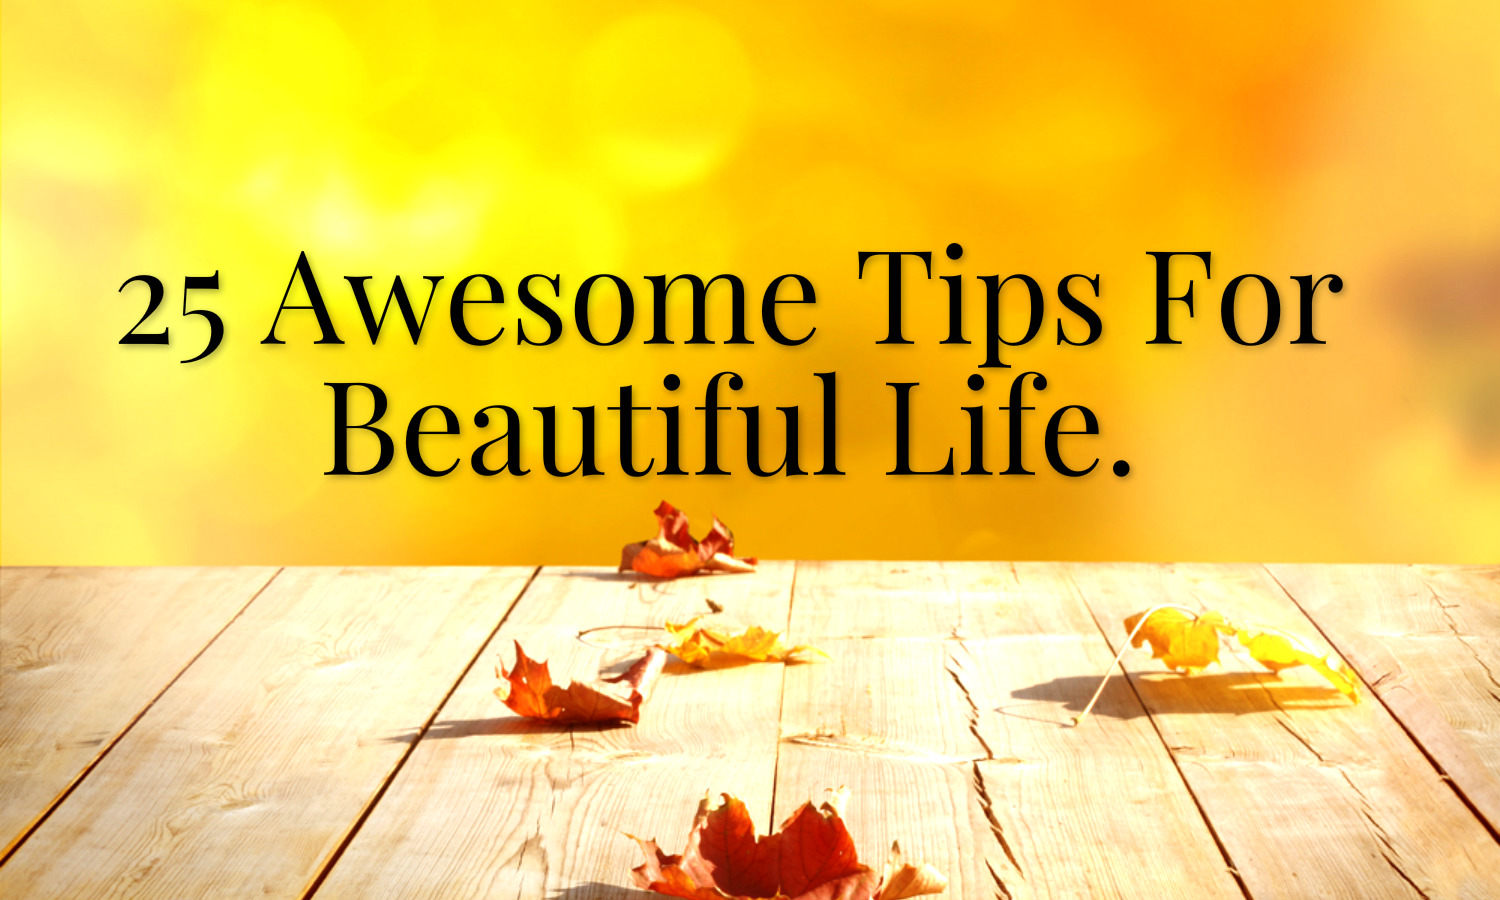 25 Awesome Tips For Beautiful Life.